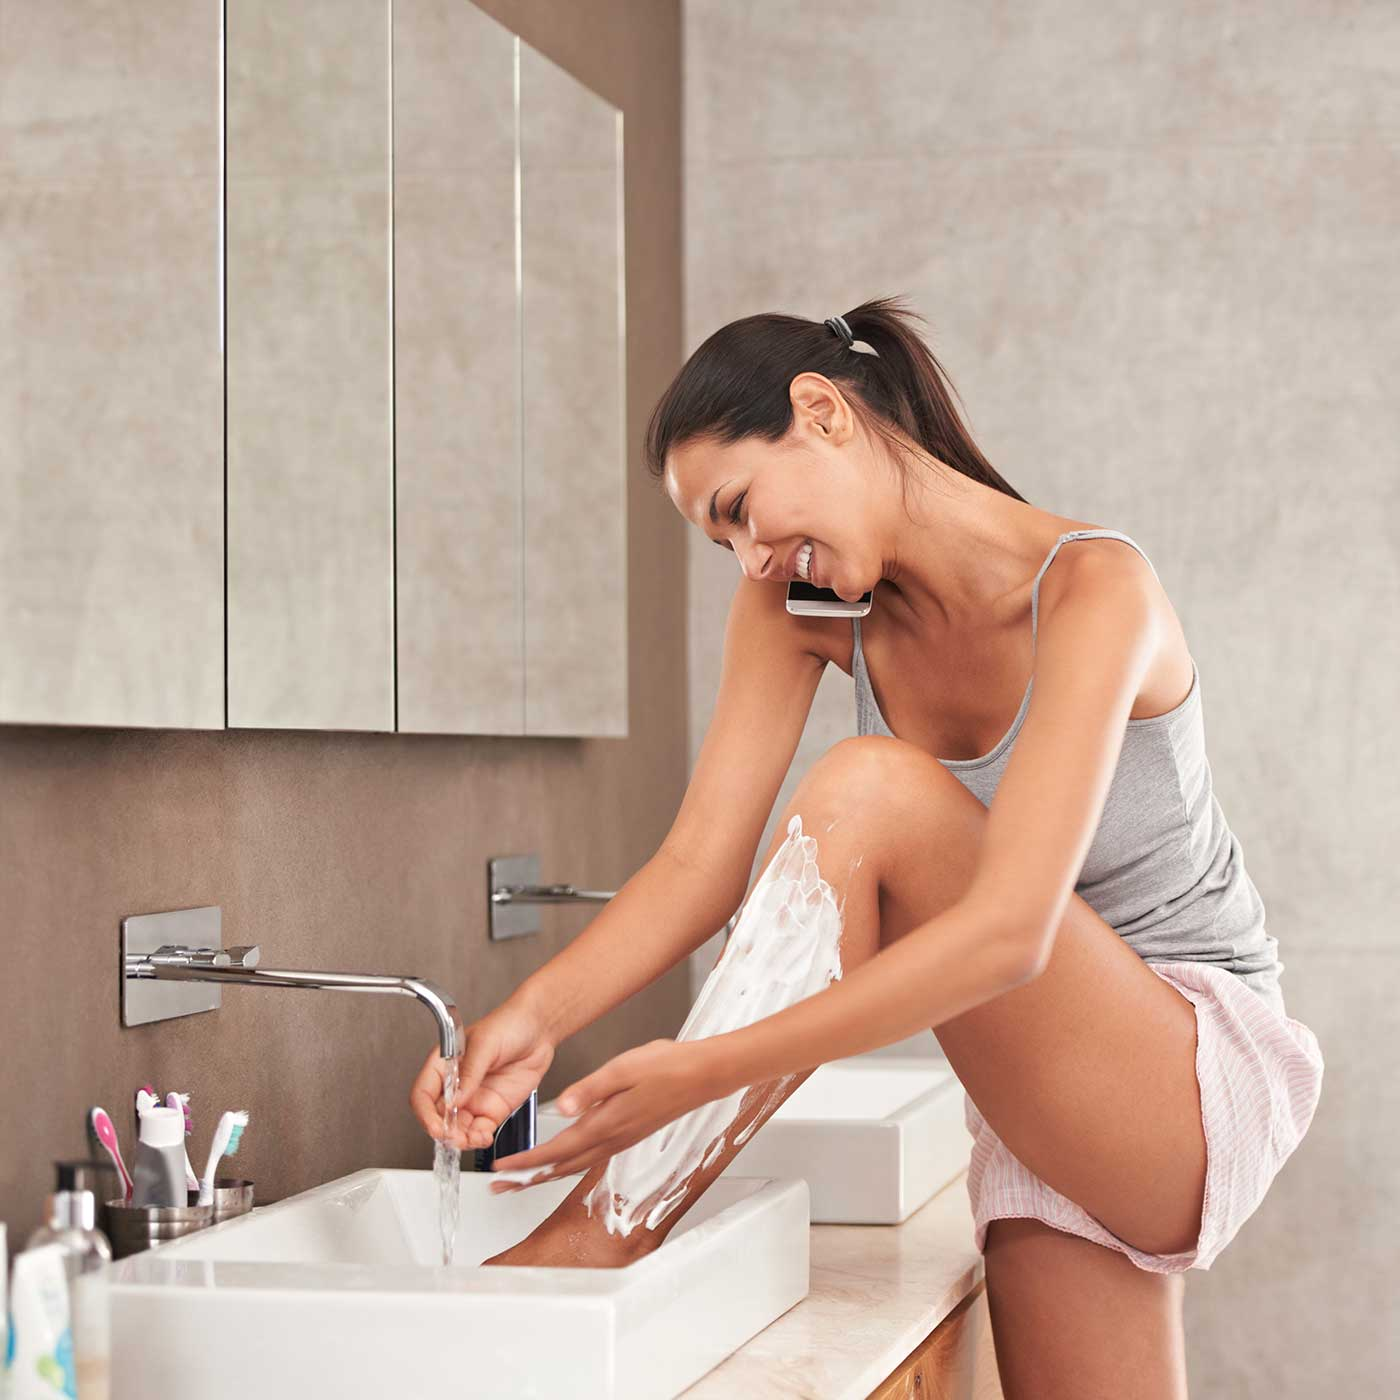 Top 10 Benefits of Waxing over Shaving | Nad's Hair Removal Blog